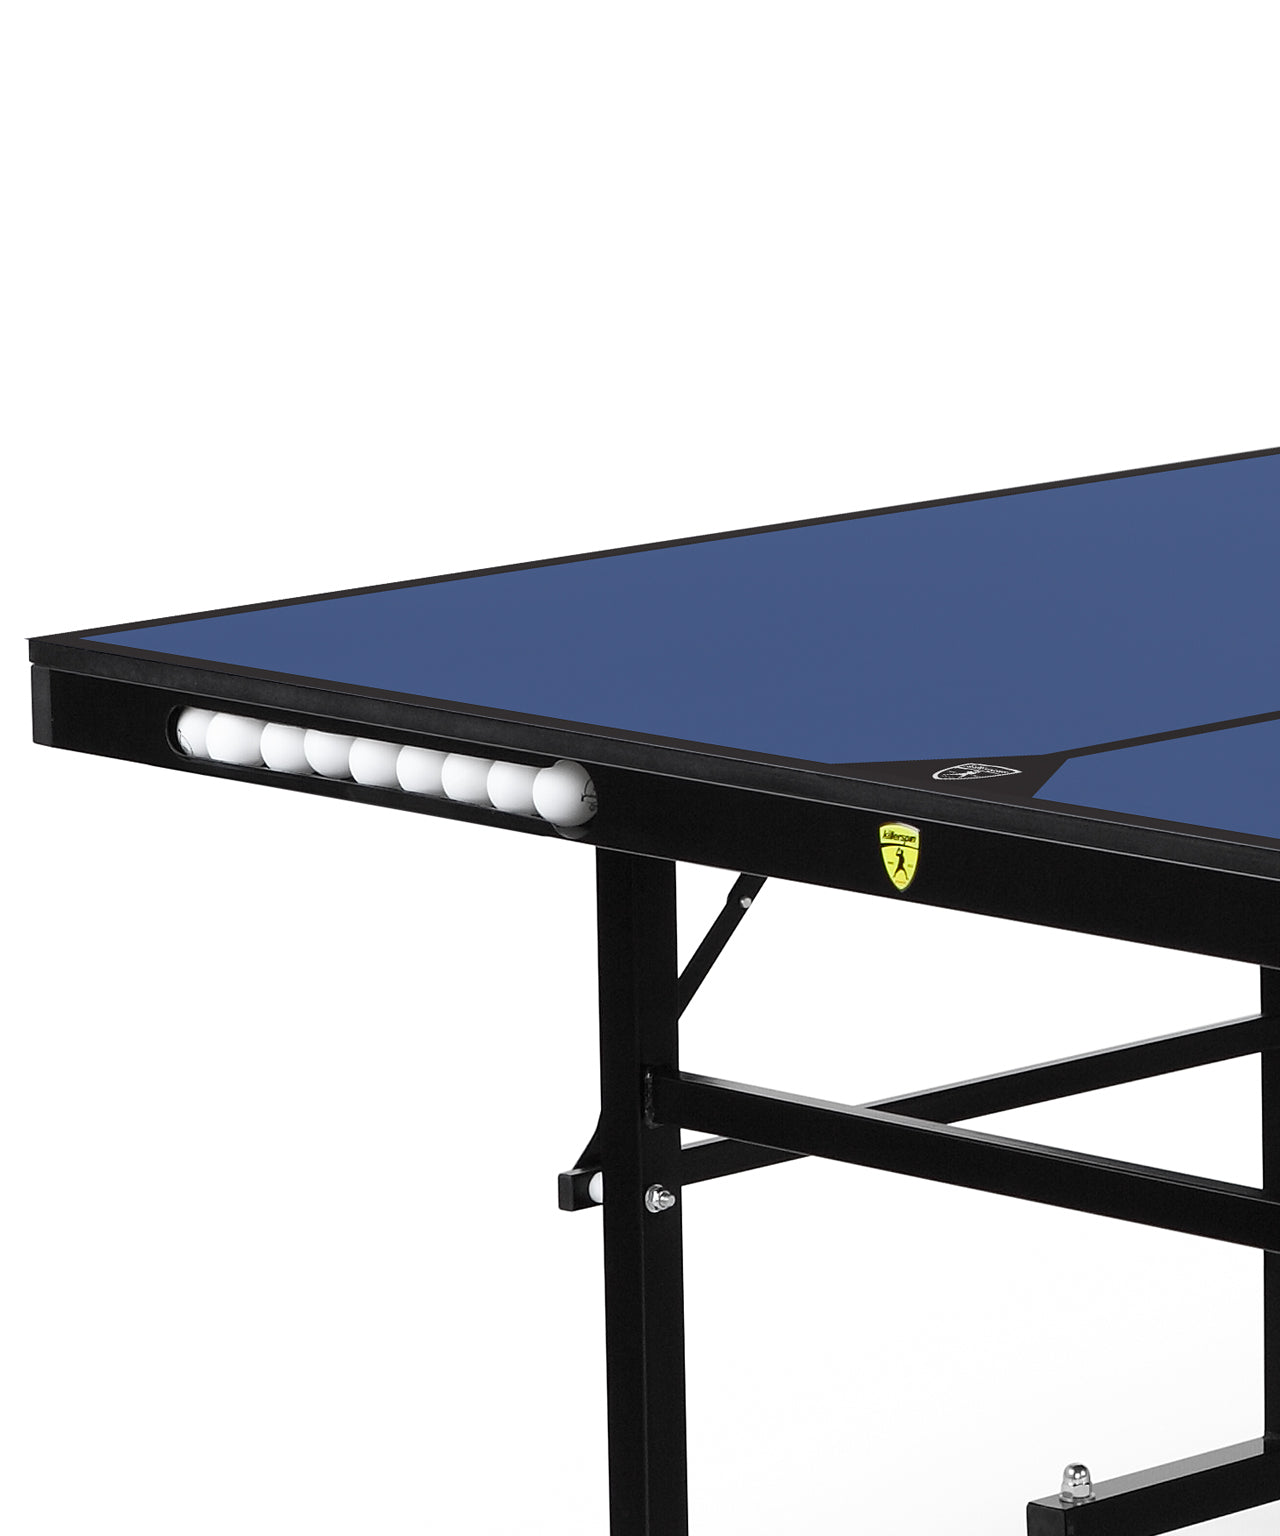 Killerspin Indoor Ping Pong Table UnPlugNPlay415 DeepBlu Black frame Blue top model 2020 - ball pocket